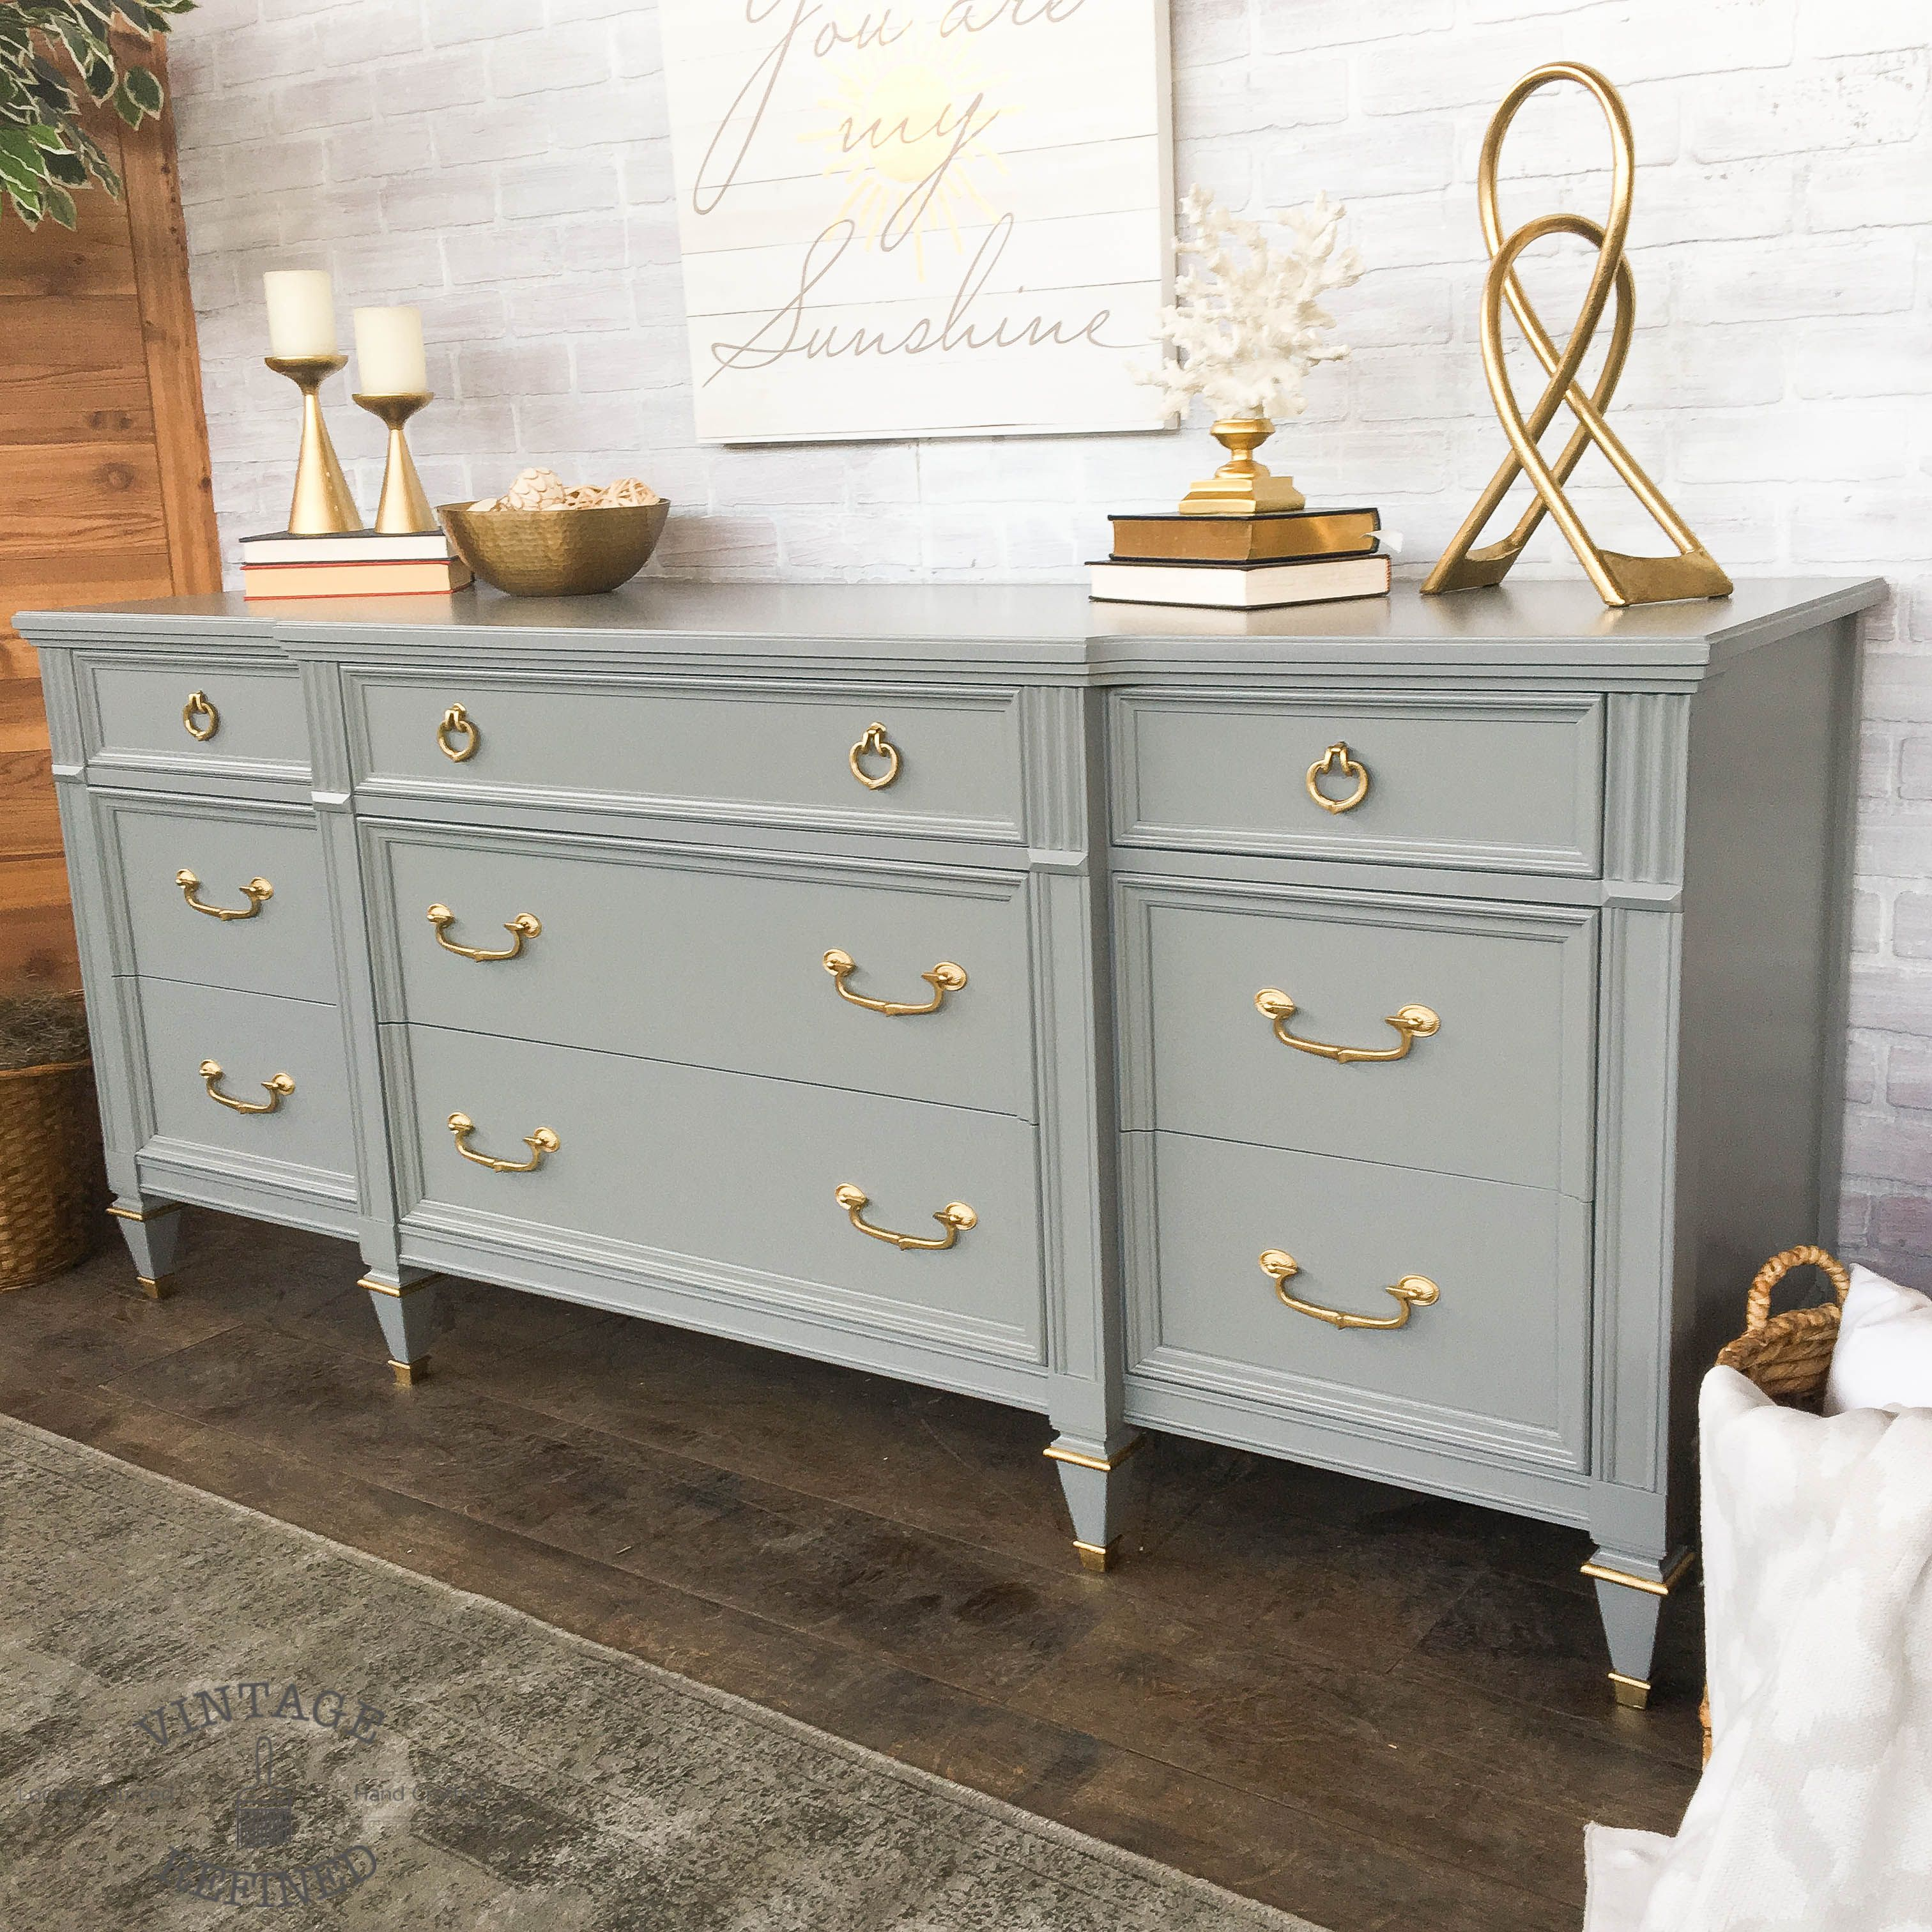 Pinterest Meubles Peints Grey Painted Dresser With Gold Hardware Painted Furniture